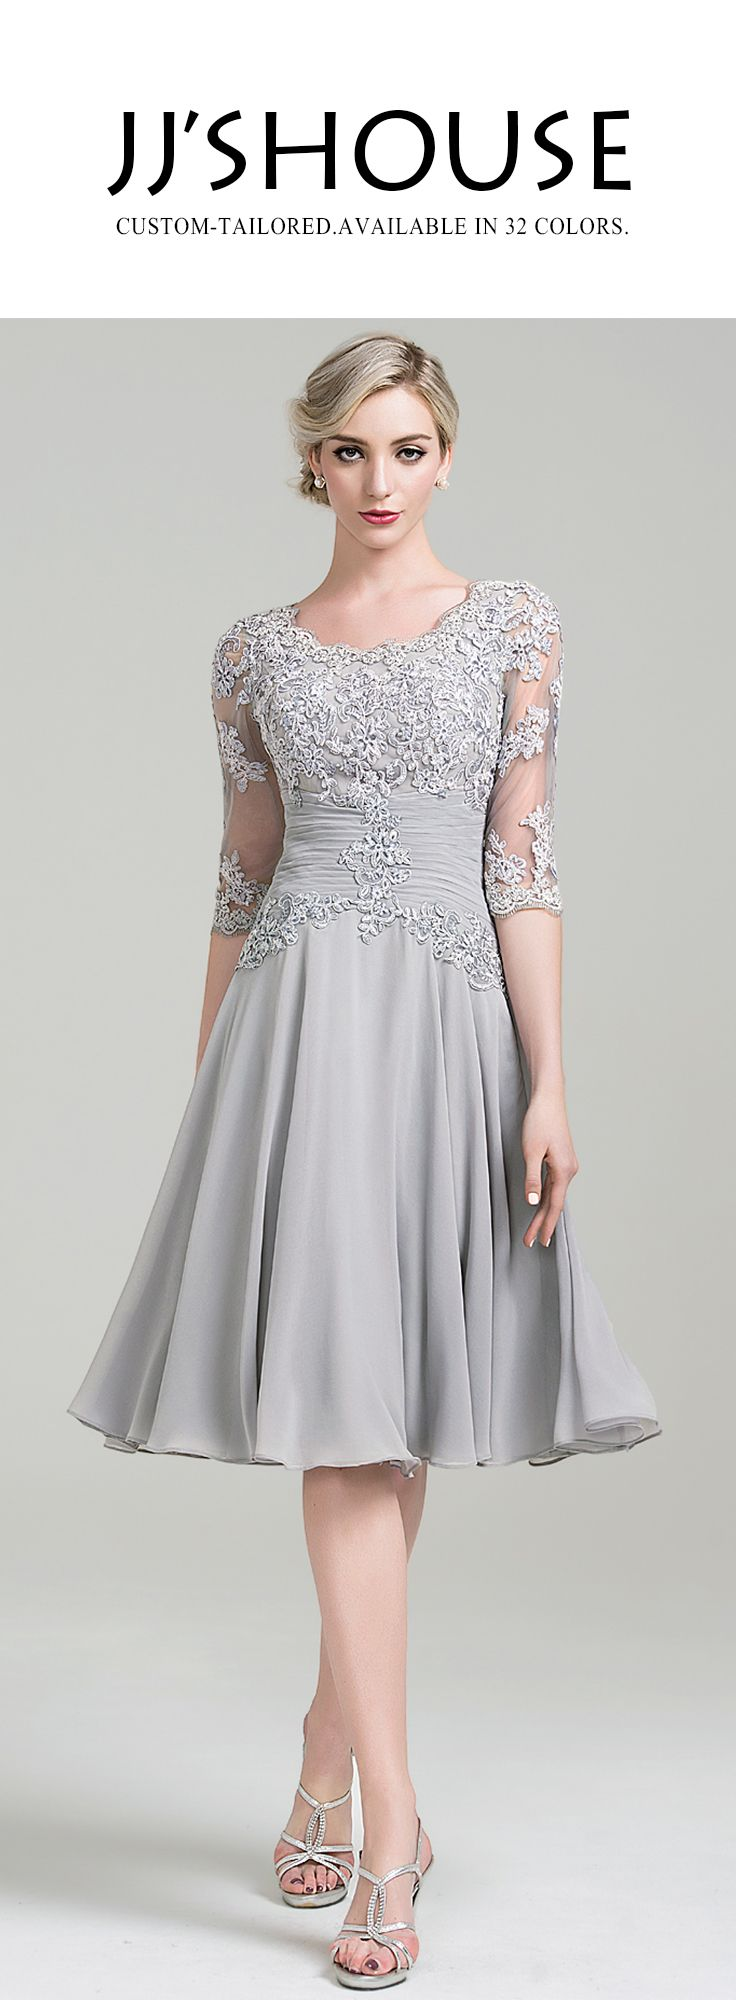 a81021ef075a Short and chic. This dress is a perfect choice for any mother of the bride  groom.  motherofthebridedress